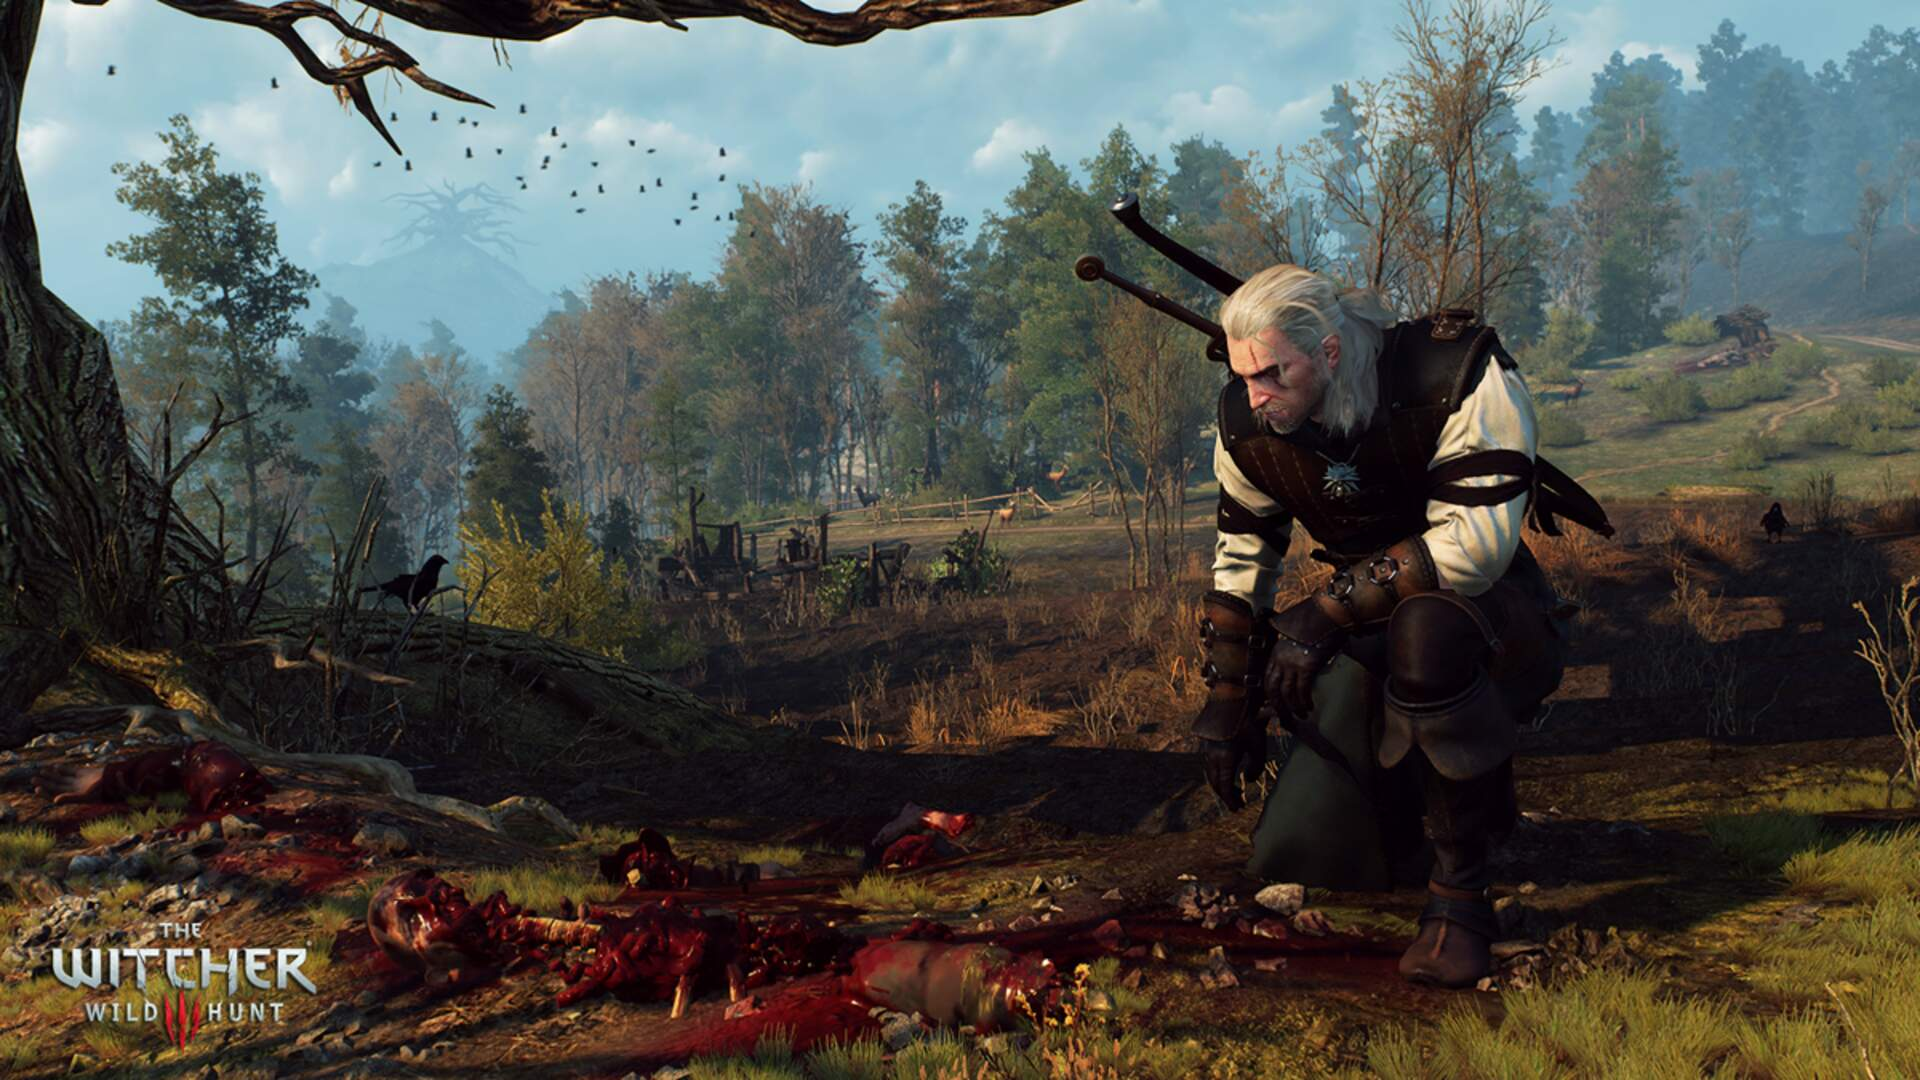 The Witcher 3 Where To Get The Geralt Of Rivia Gwent Card Usgamer